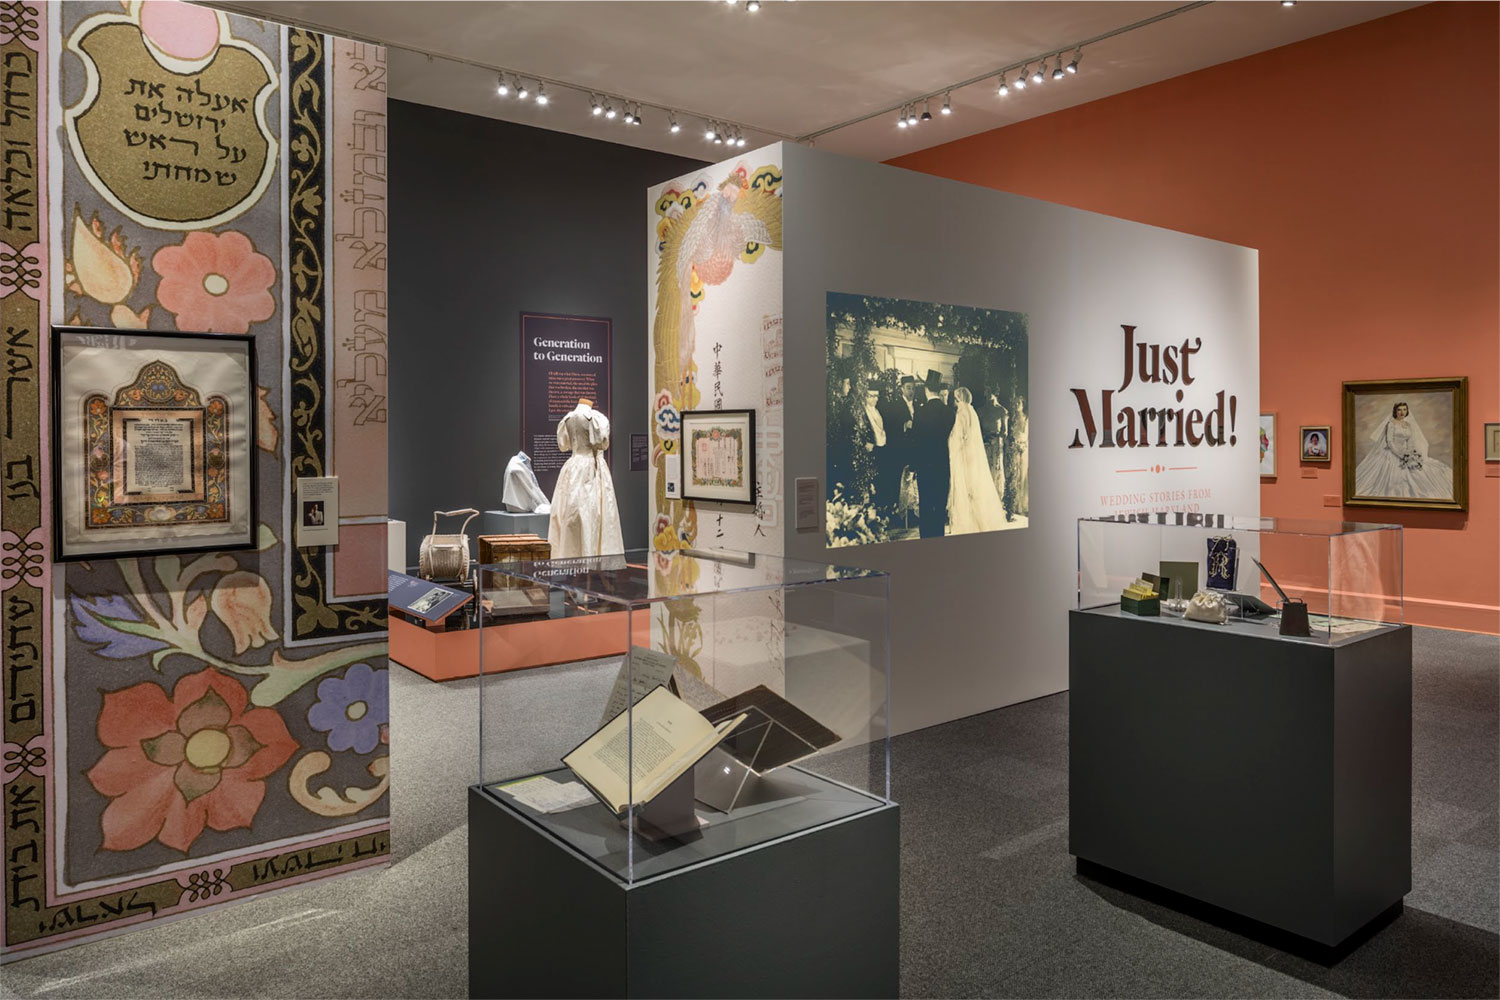 Just Married exhibition